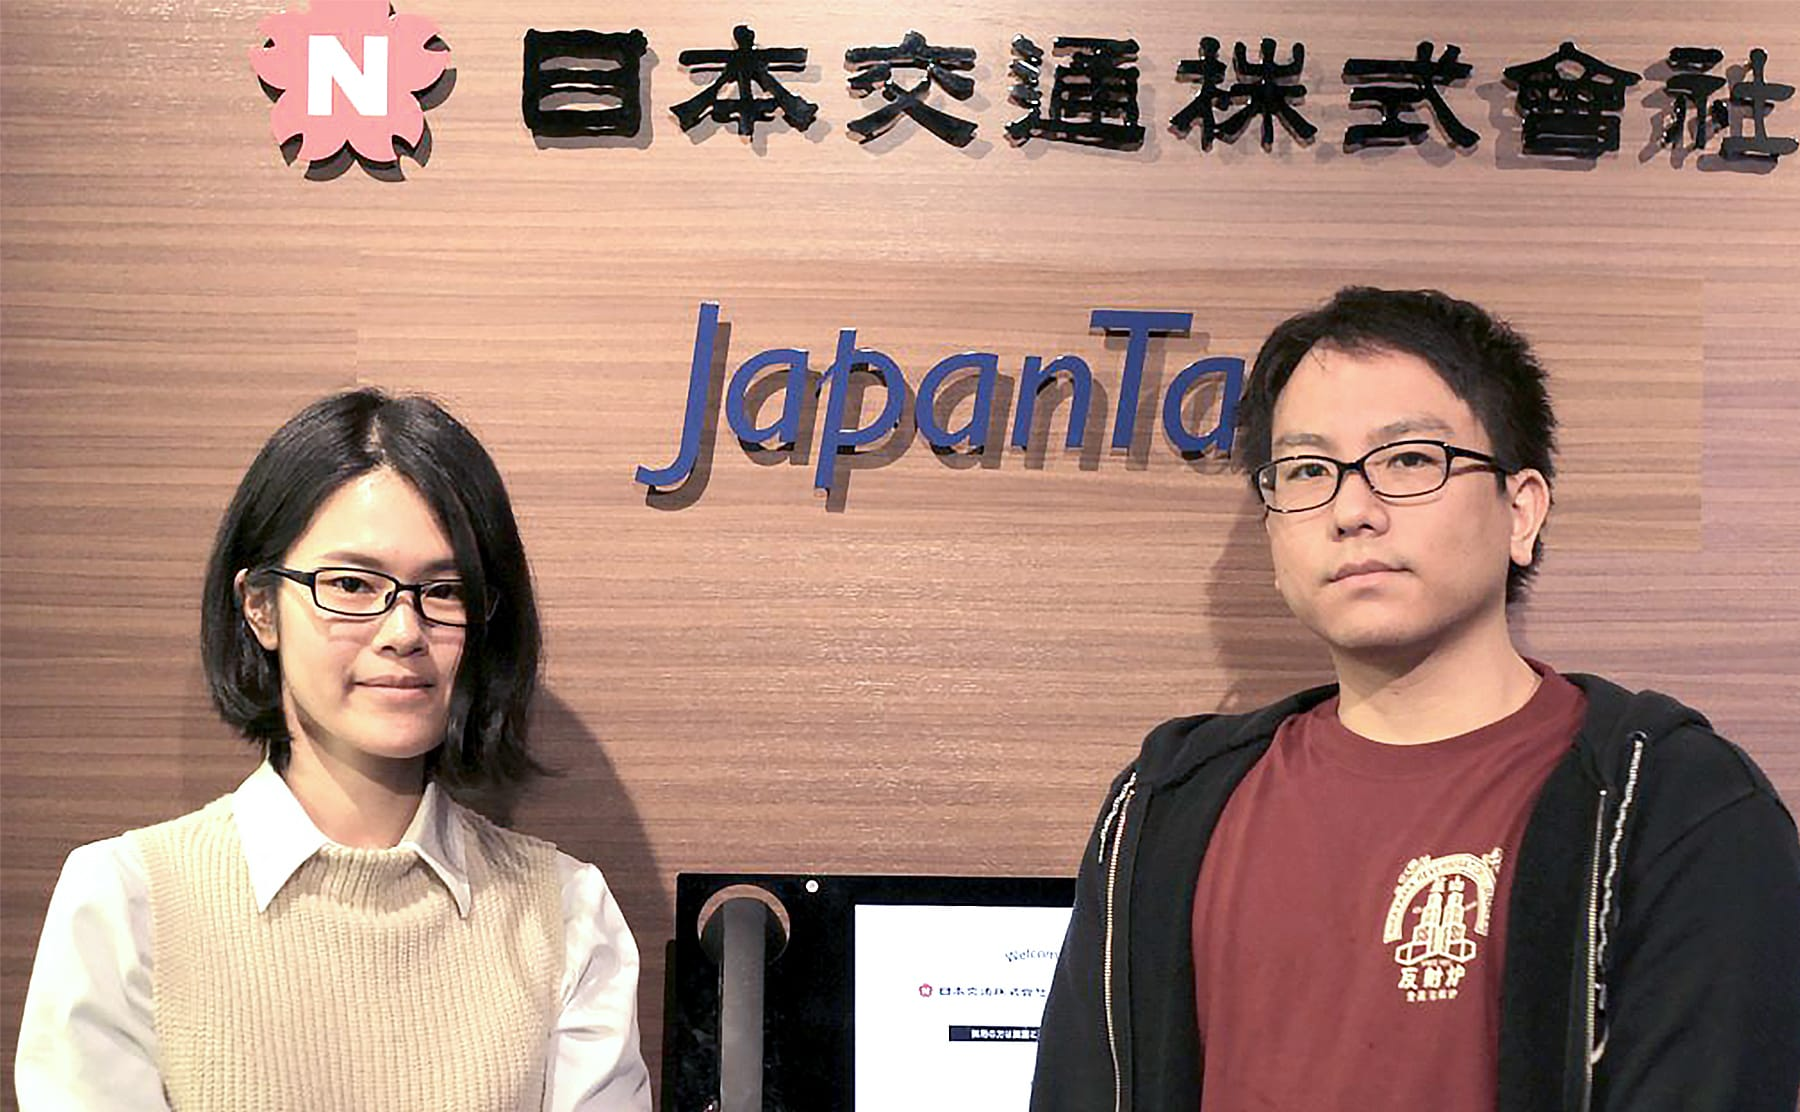 Pict interview japantaxi 03